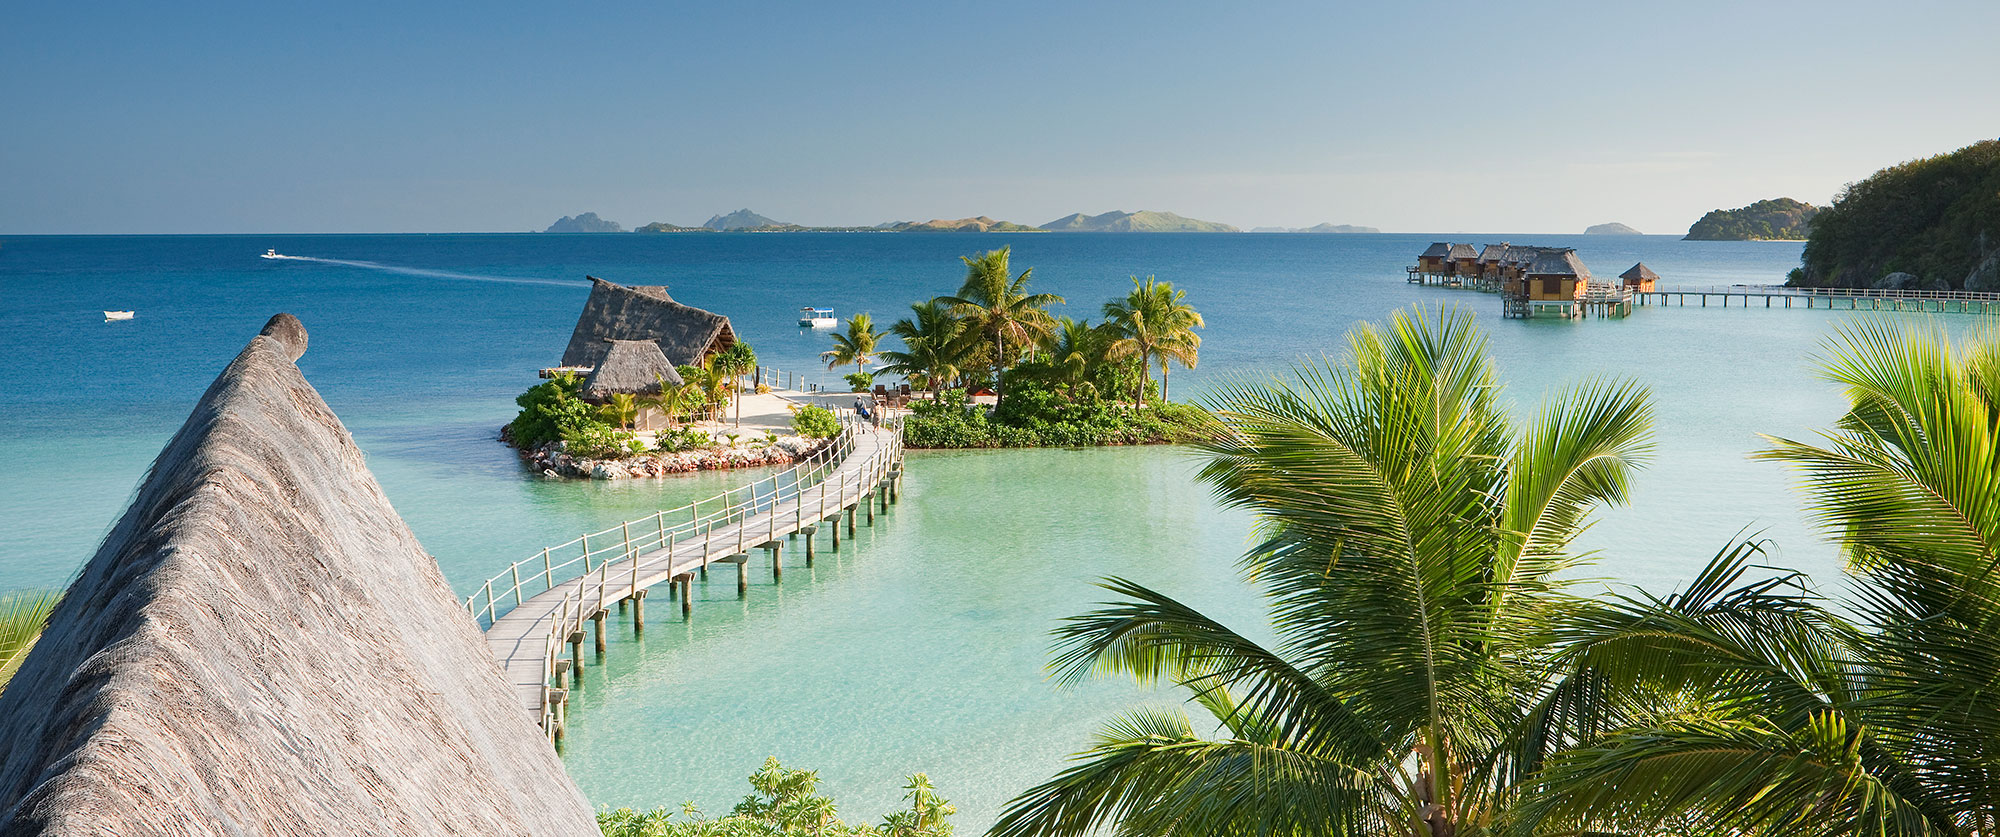 Fiji Overwater Bungalow Vacation Package Honeymoon: overwater bungalows fiji